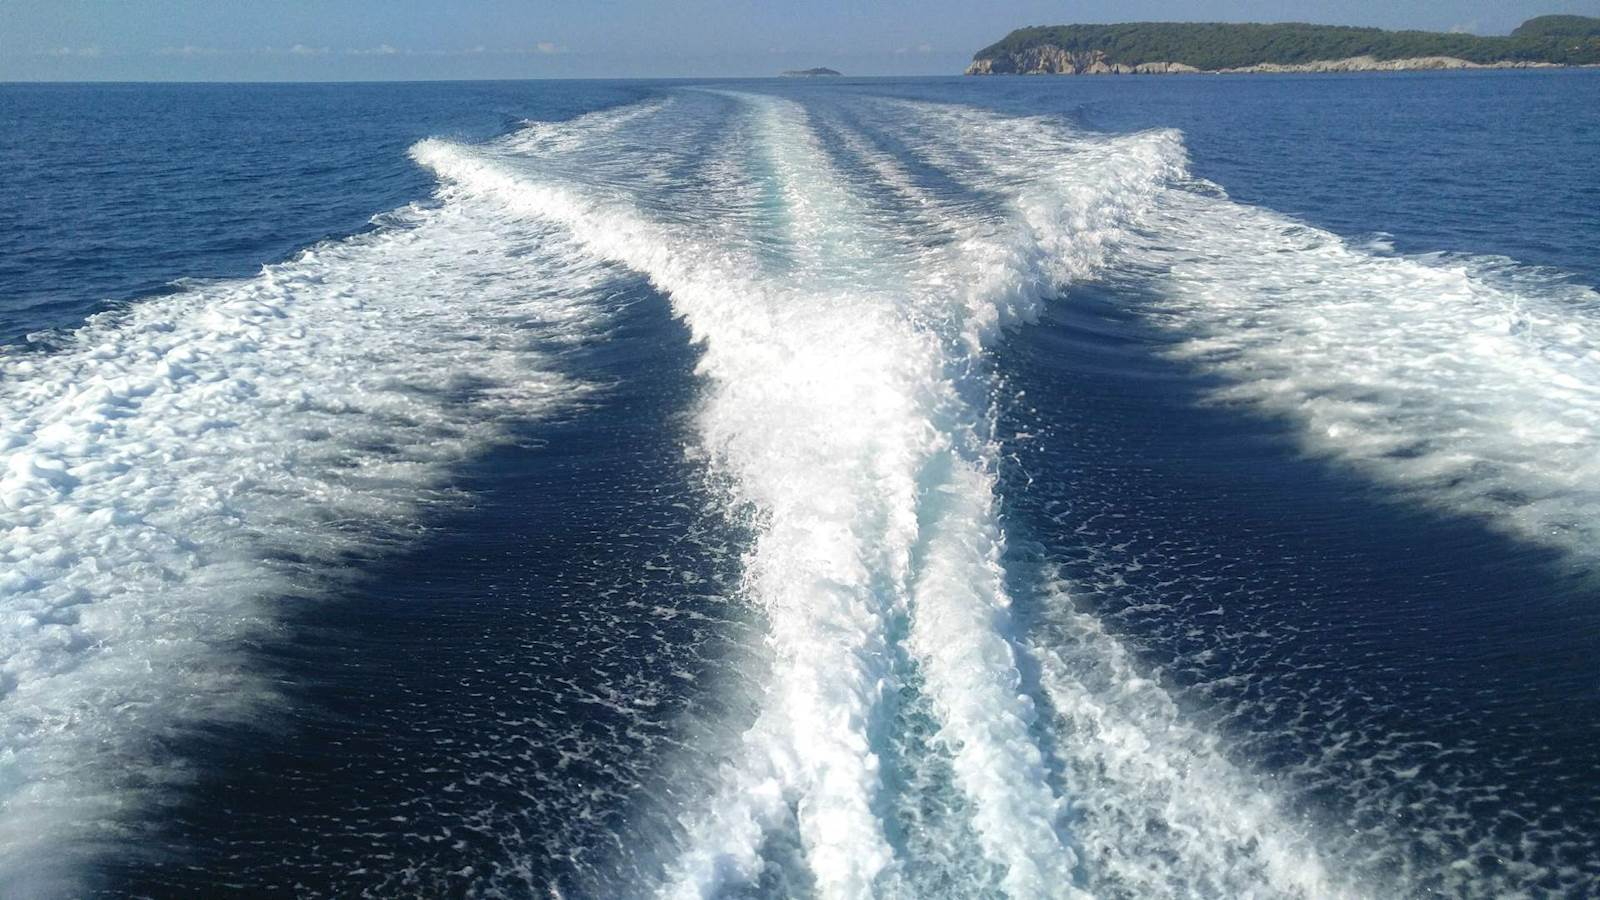 -images-excursions-elaphite-islands-speed-boat-excursion--zy-03-private-boat-tour-dubrovnik-elafiti.jpg